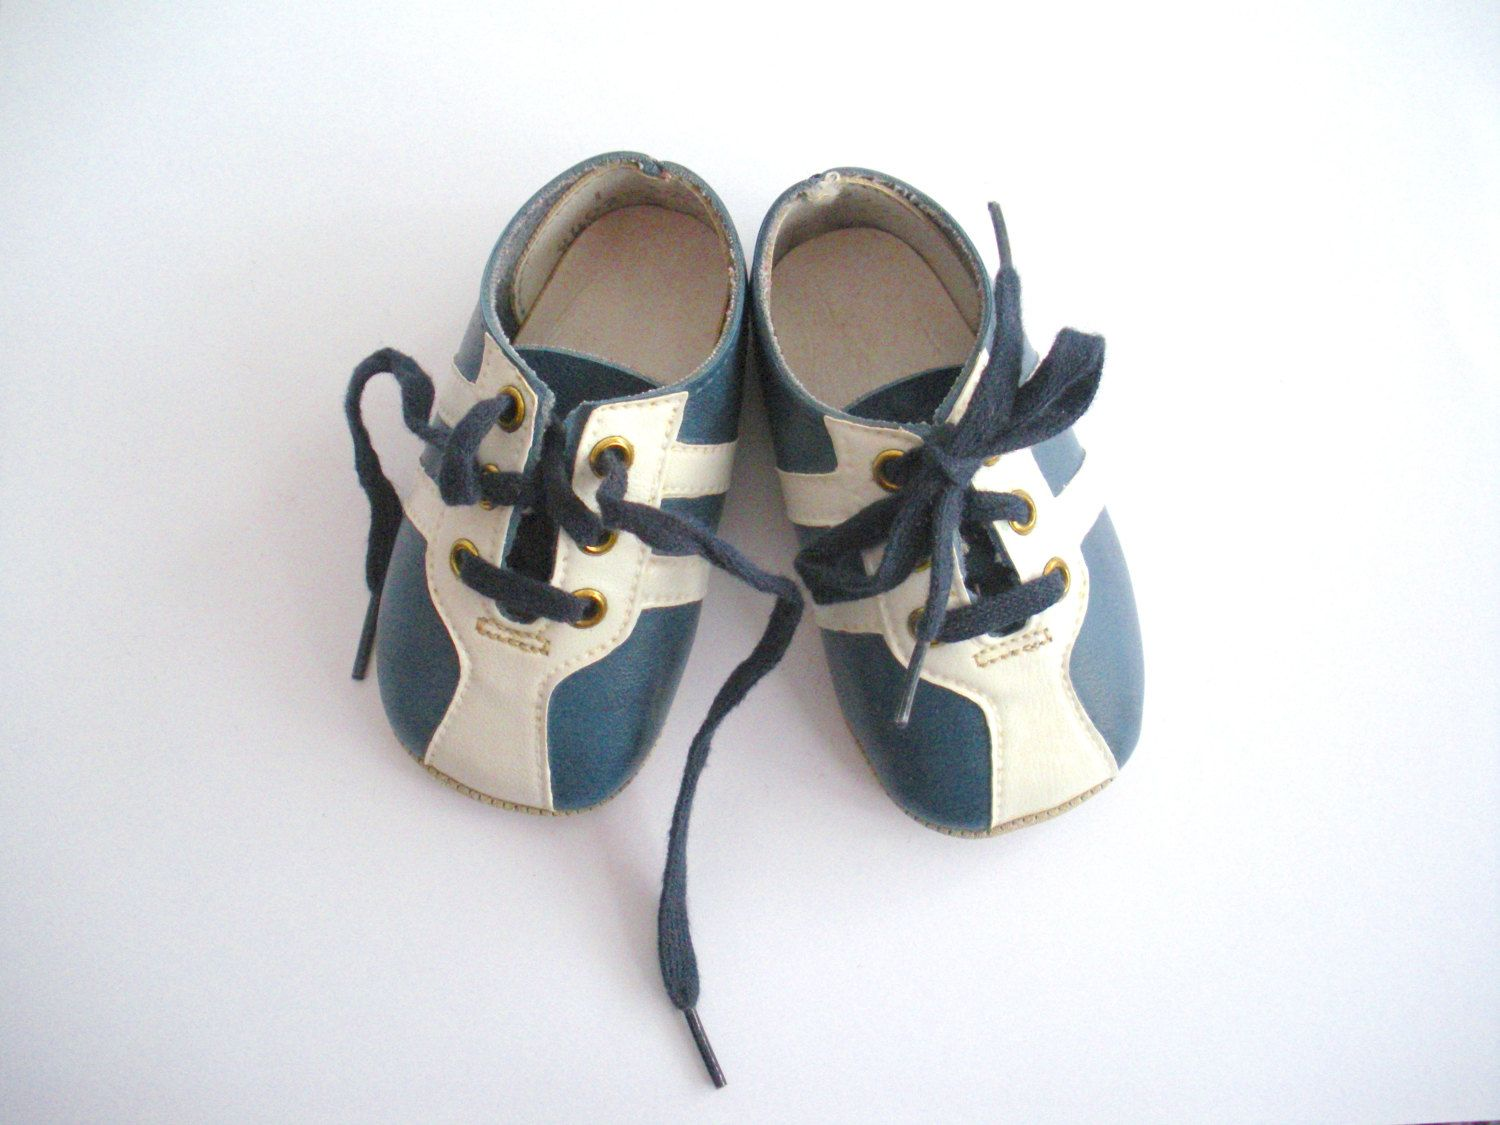 LOVE Vintage Baby Boy Shoes Navy Blue Soft Sole